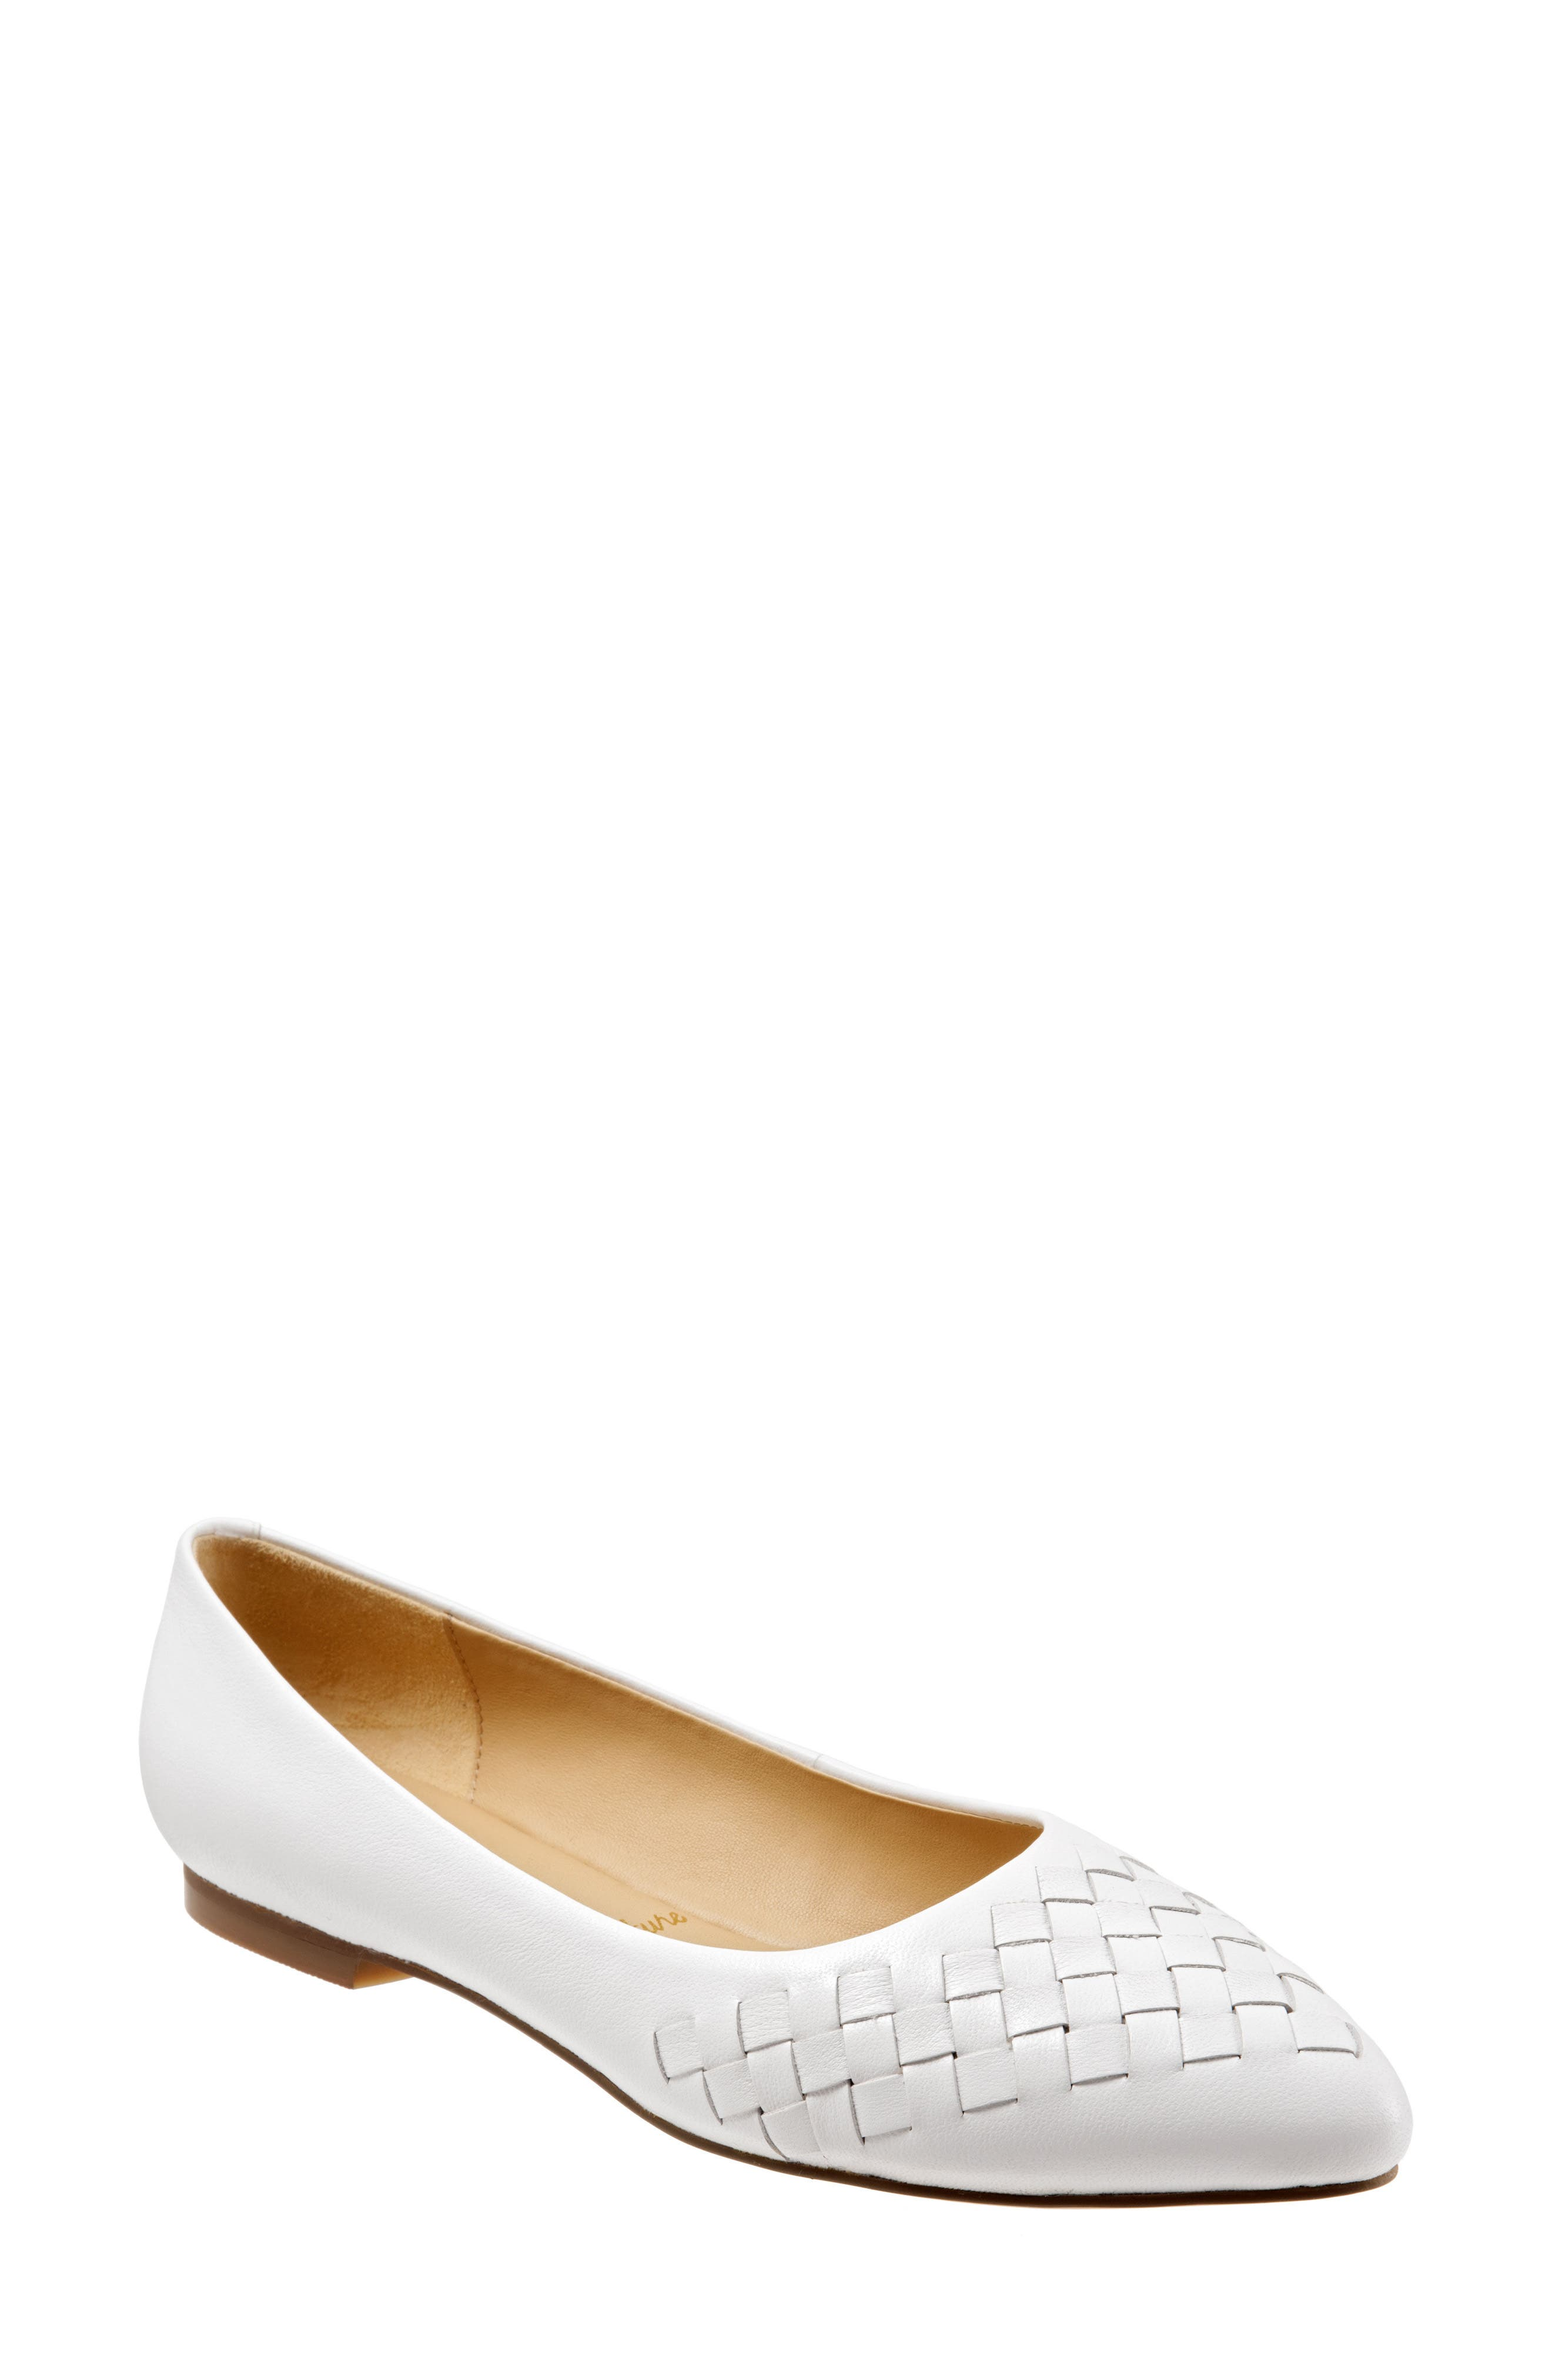 Trotters Estee Pointed Toe Flat, White